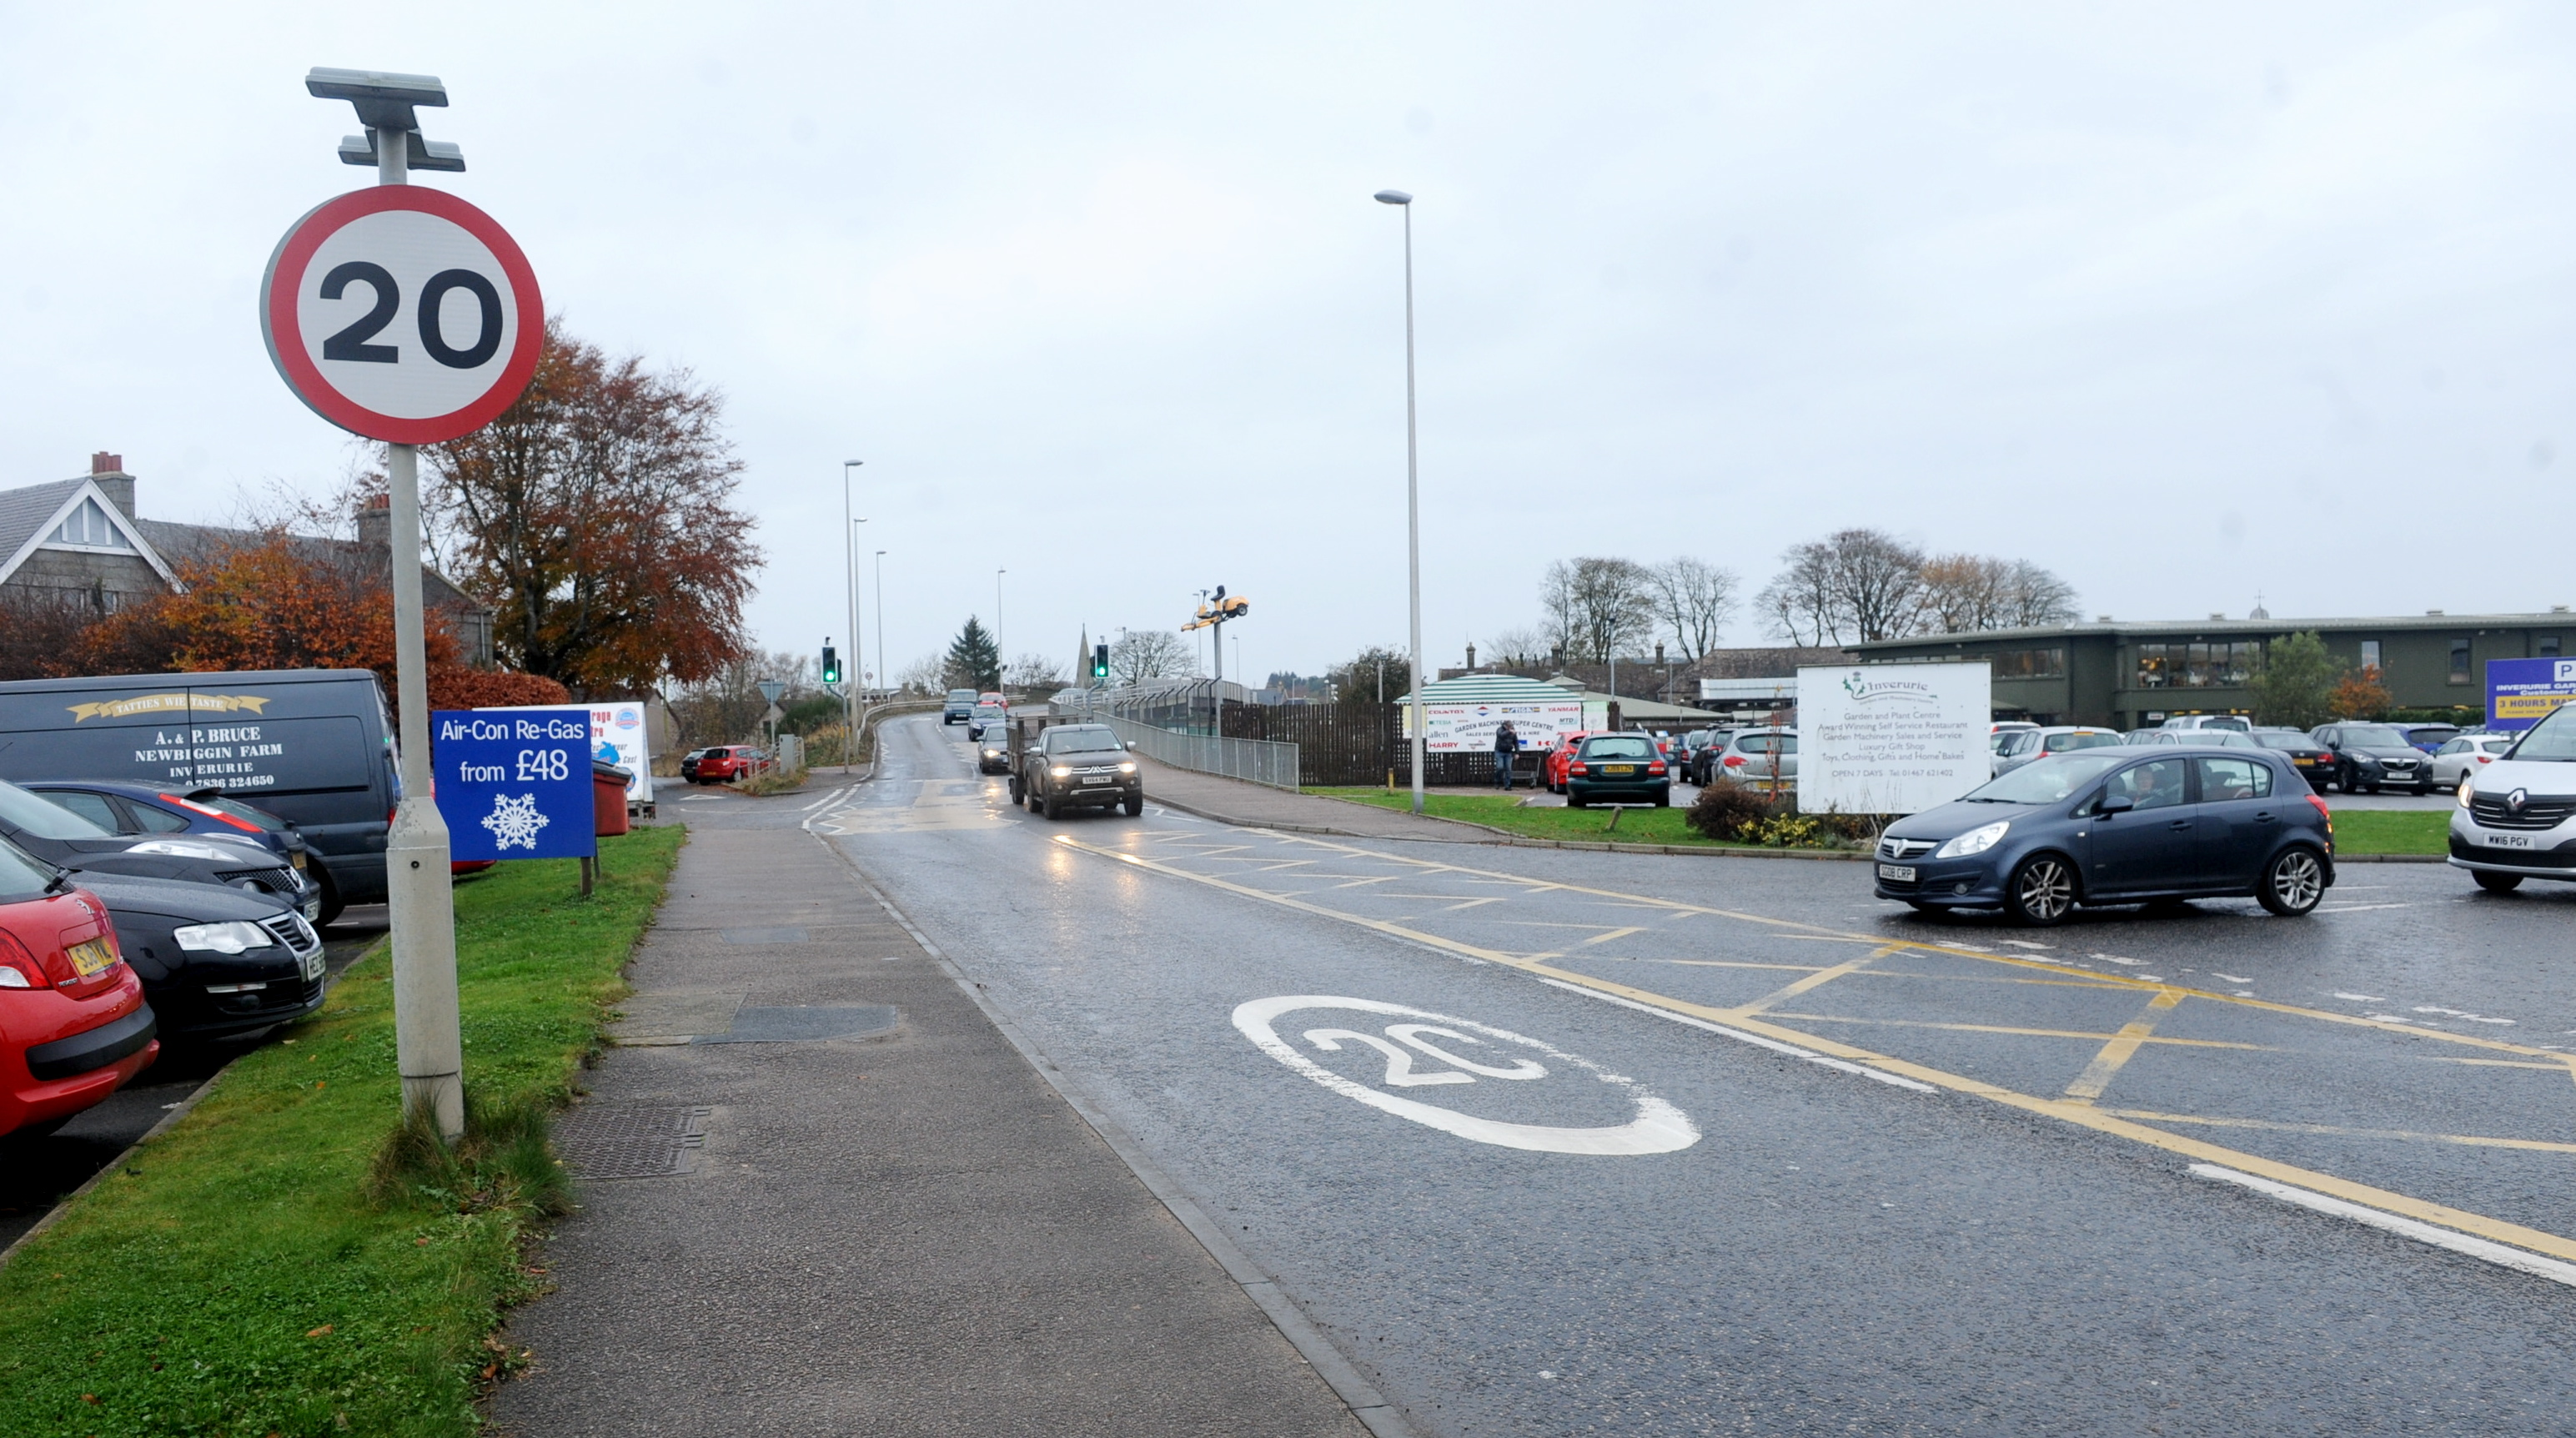 RESTRICTION: An existing 20mph zone in Inverurie. picture by chris sumner